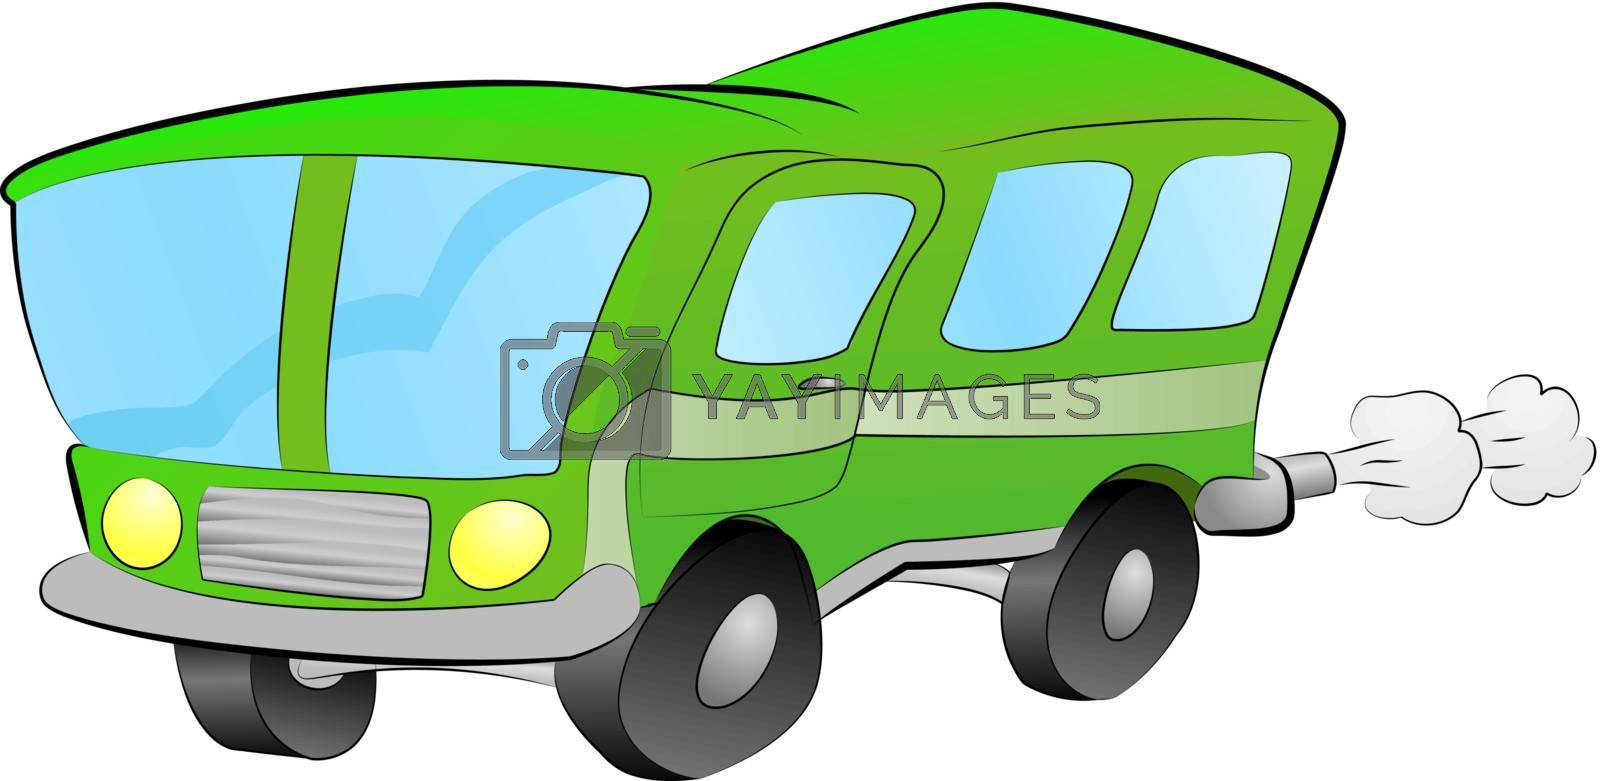 An illustration of a funky green bus